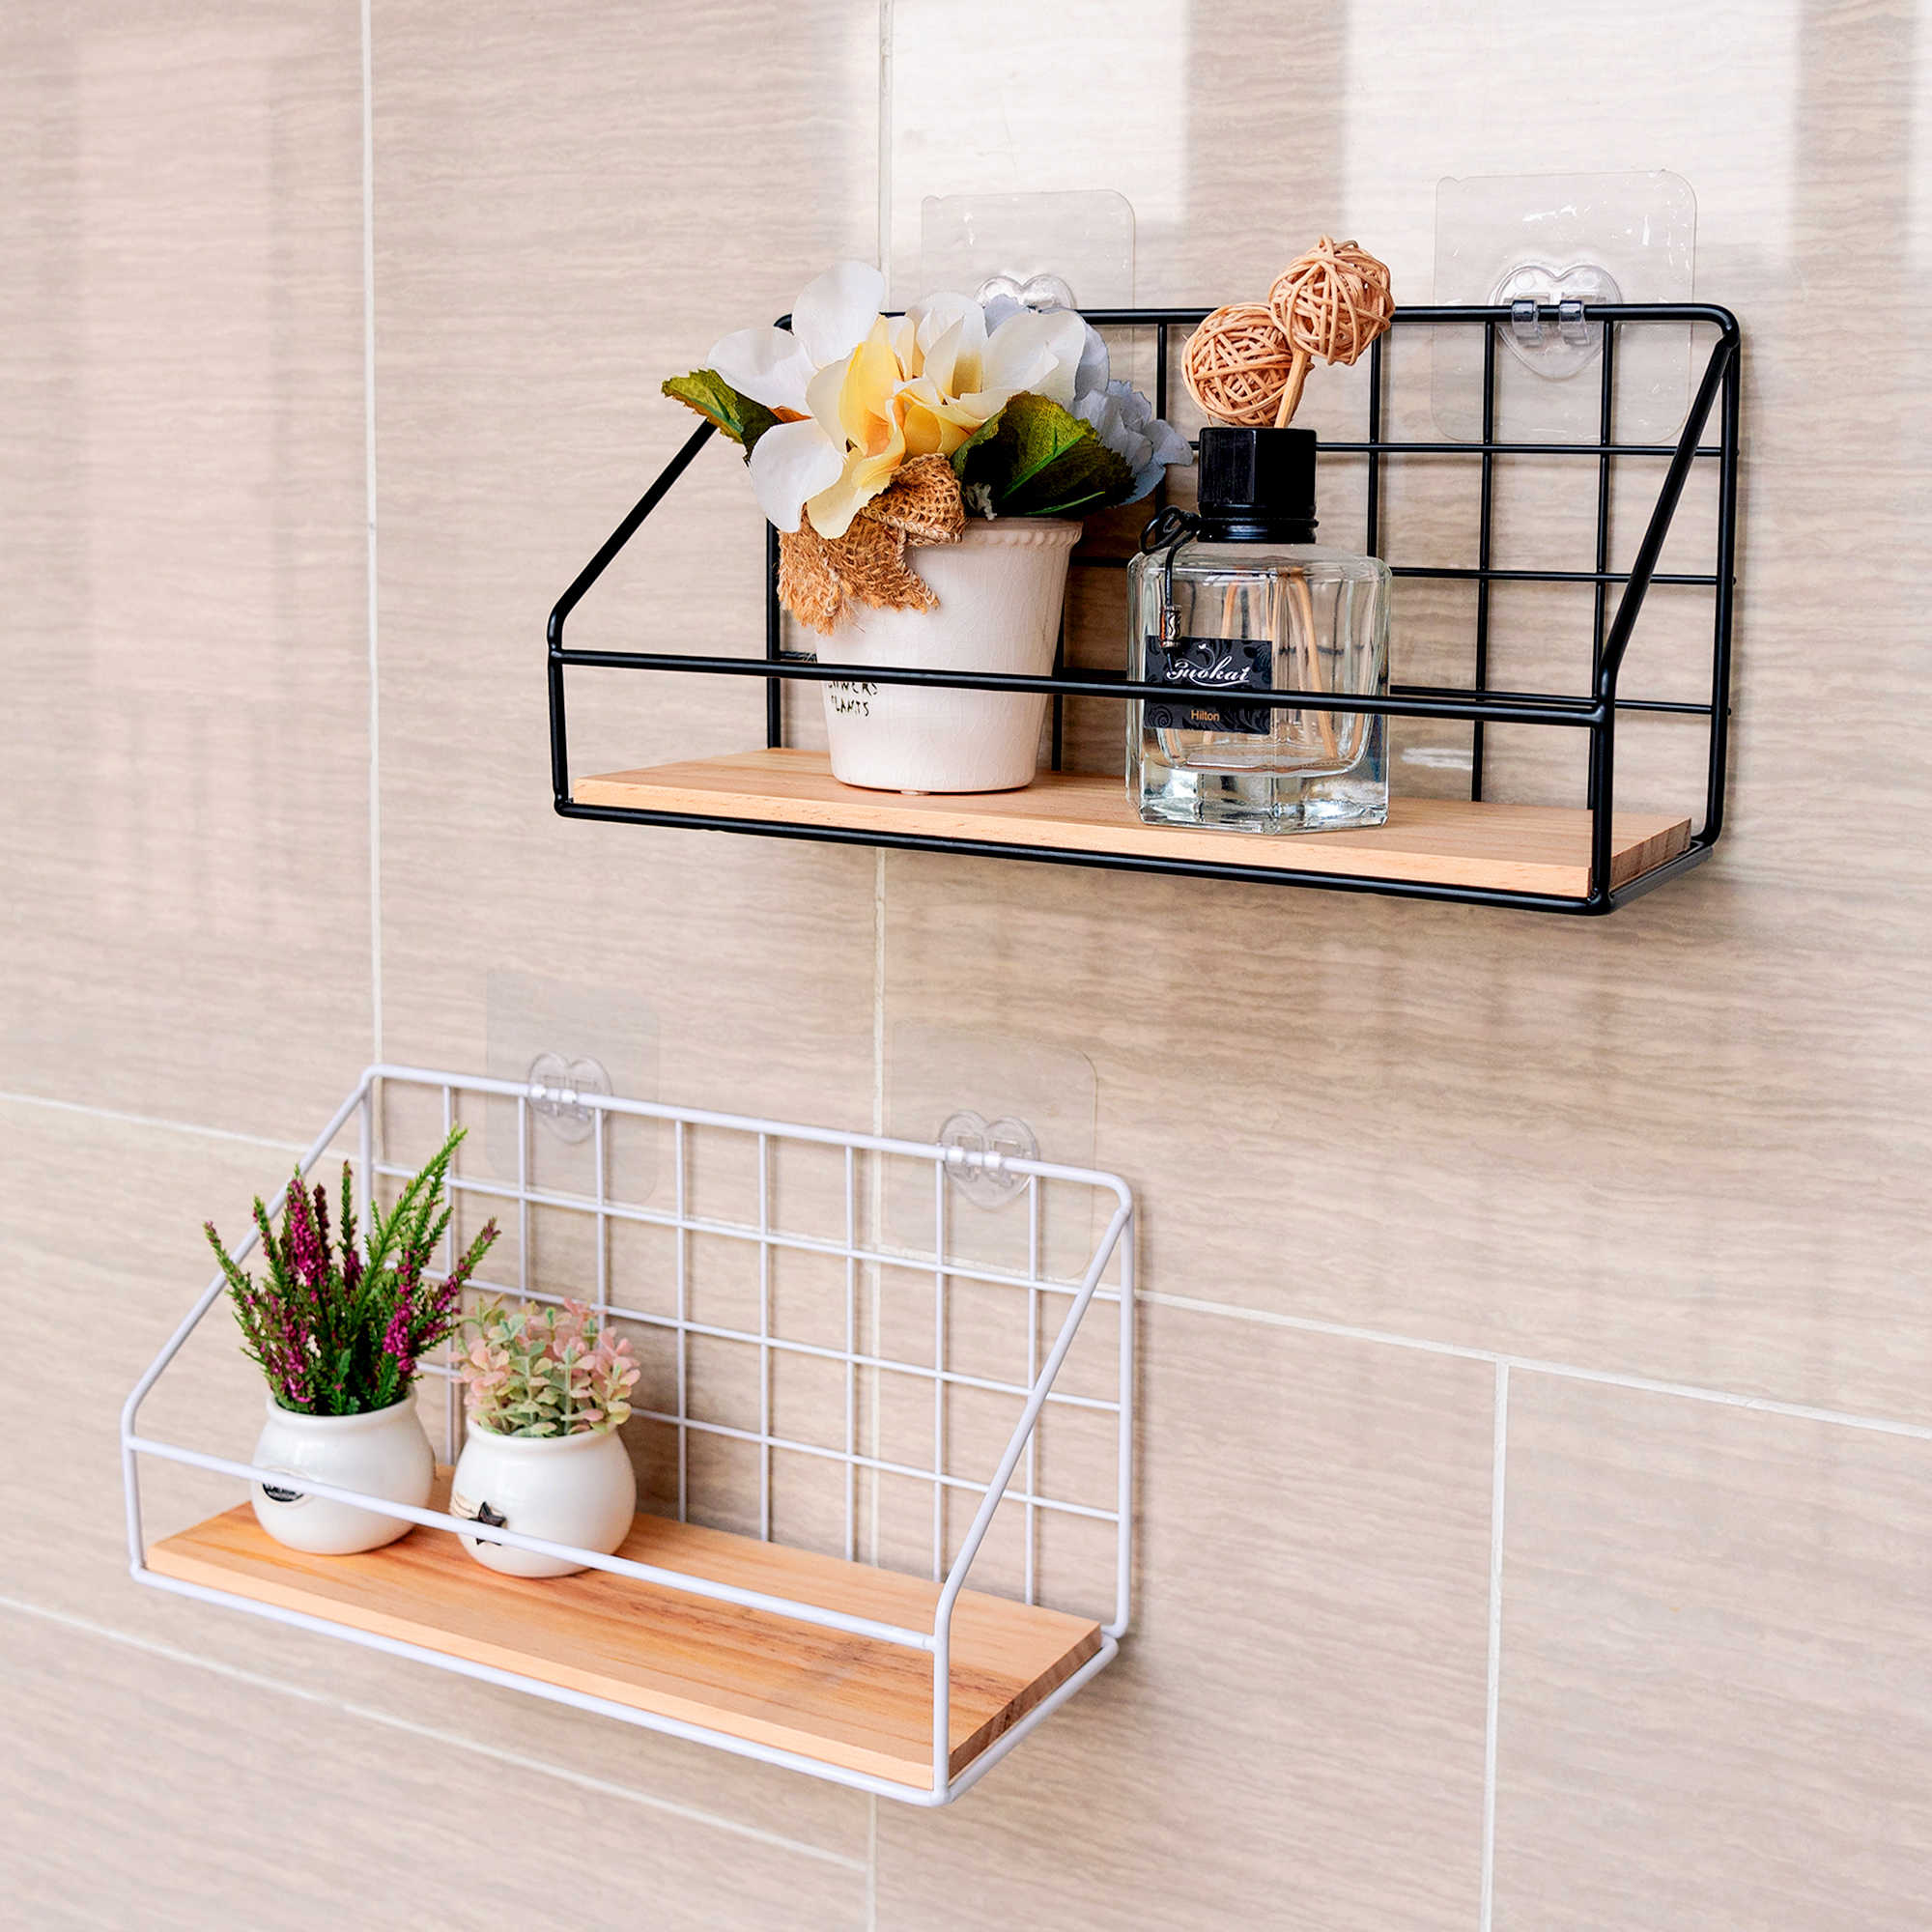 Wooden Iron Wall Shelf Wall Mounted Storage Rack Organization For Kitchen Bedroom Home Decor Kid Room Diy Wall Decoration Holder Decorative Shelves Aliexpress